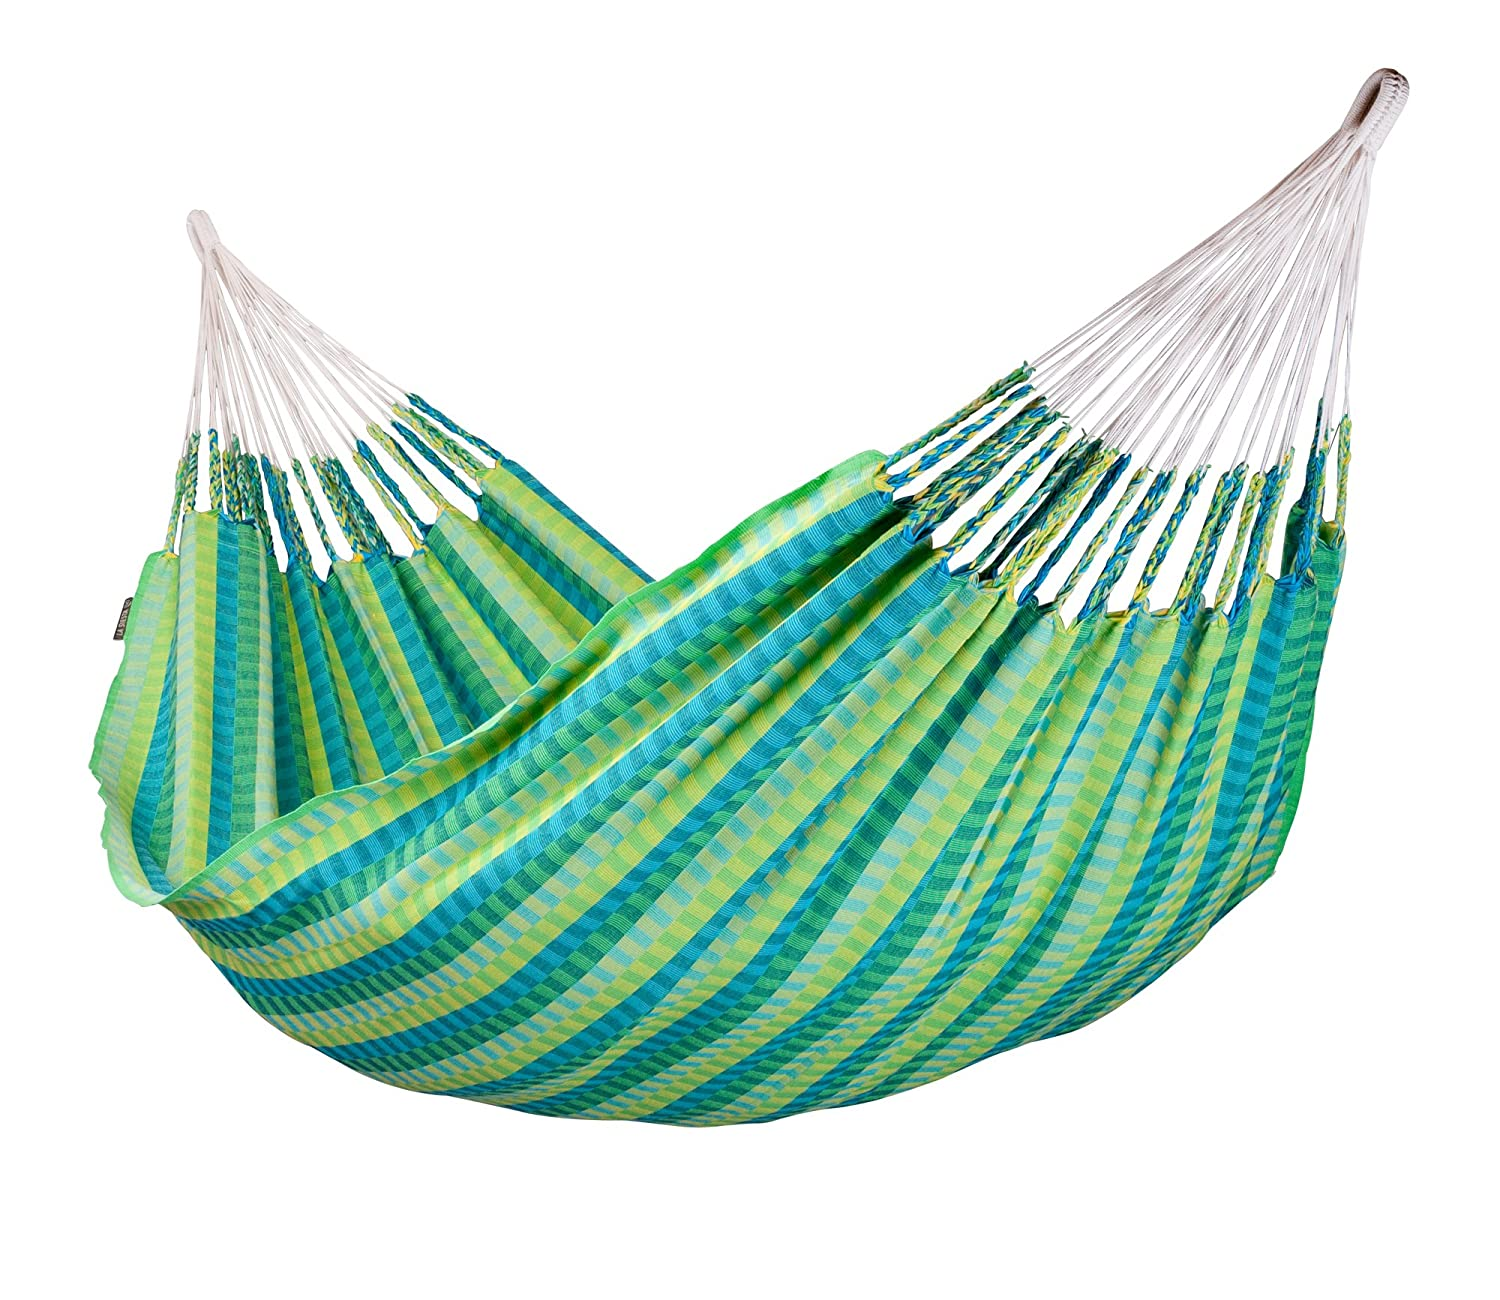 wedo hammocks colombiana bar colombian spreader products hammock